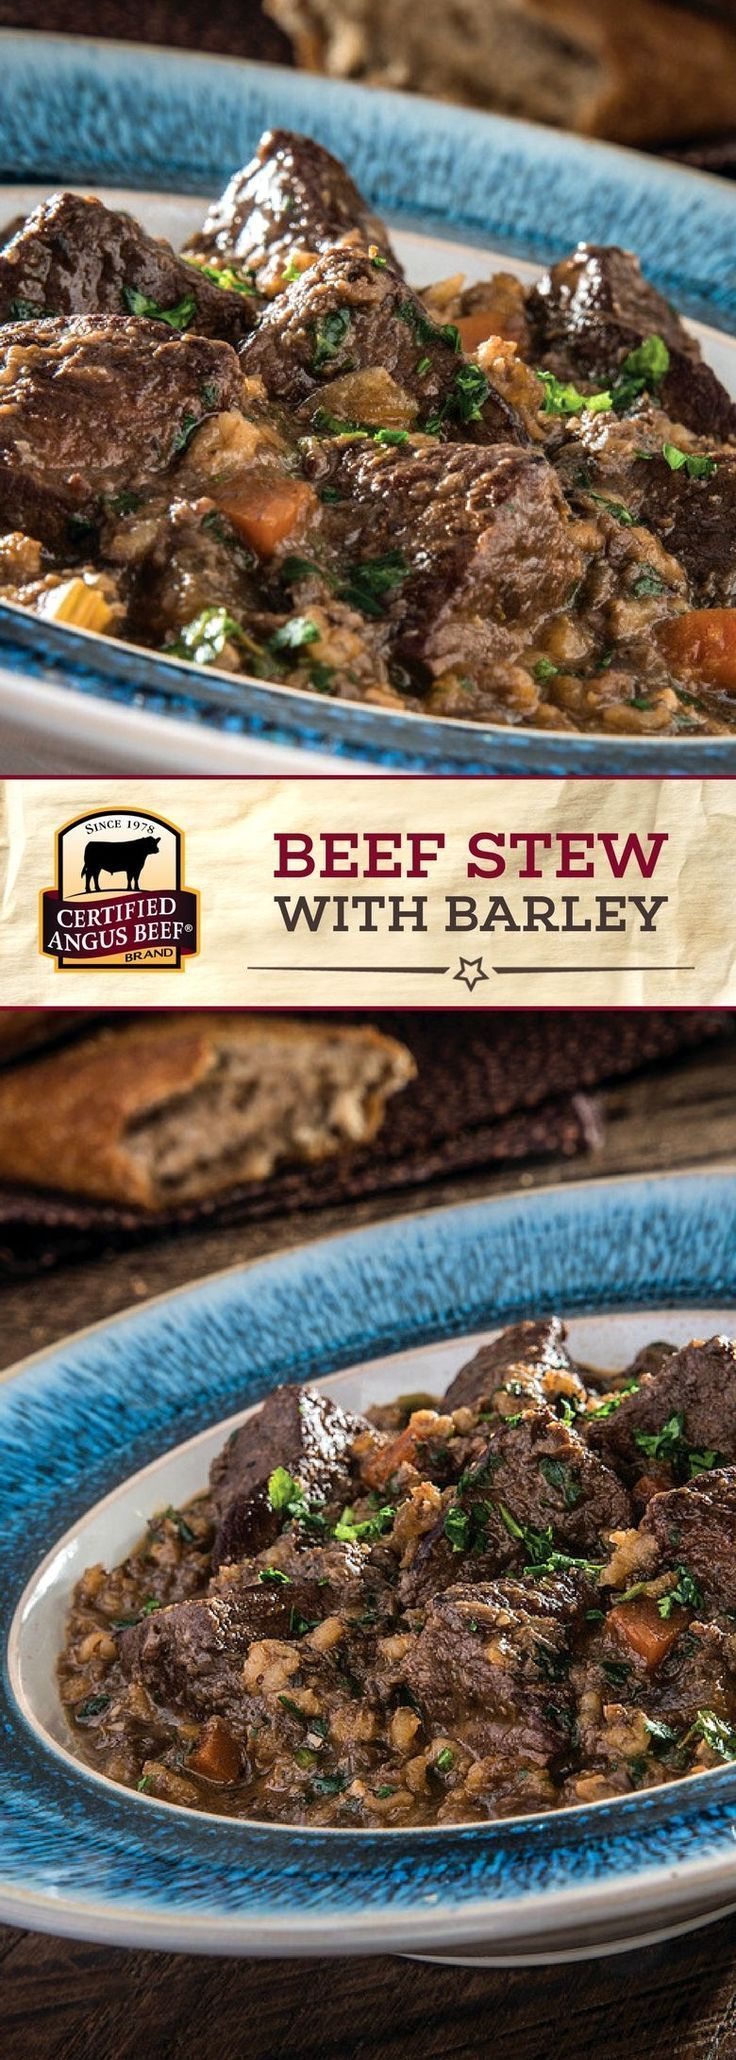 The Certified Angus Beef ®️️️️️ brand Beef Stew with Barley is made with the BEST sirloin tip, stewed with barley and other FRESH flavors! The addition of mushrooms, spinach, garlic, tomato paste, thyme and oregano diced and cooked with the beef in white wine and beef stock makes this stew recipe STAND OUT! #bestangusbeef #certifiedangusbeef #beefrecipe #stewrecipe